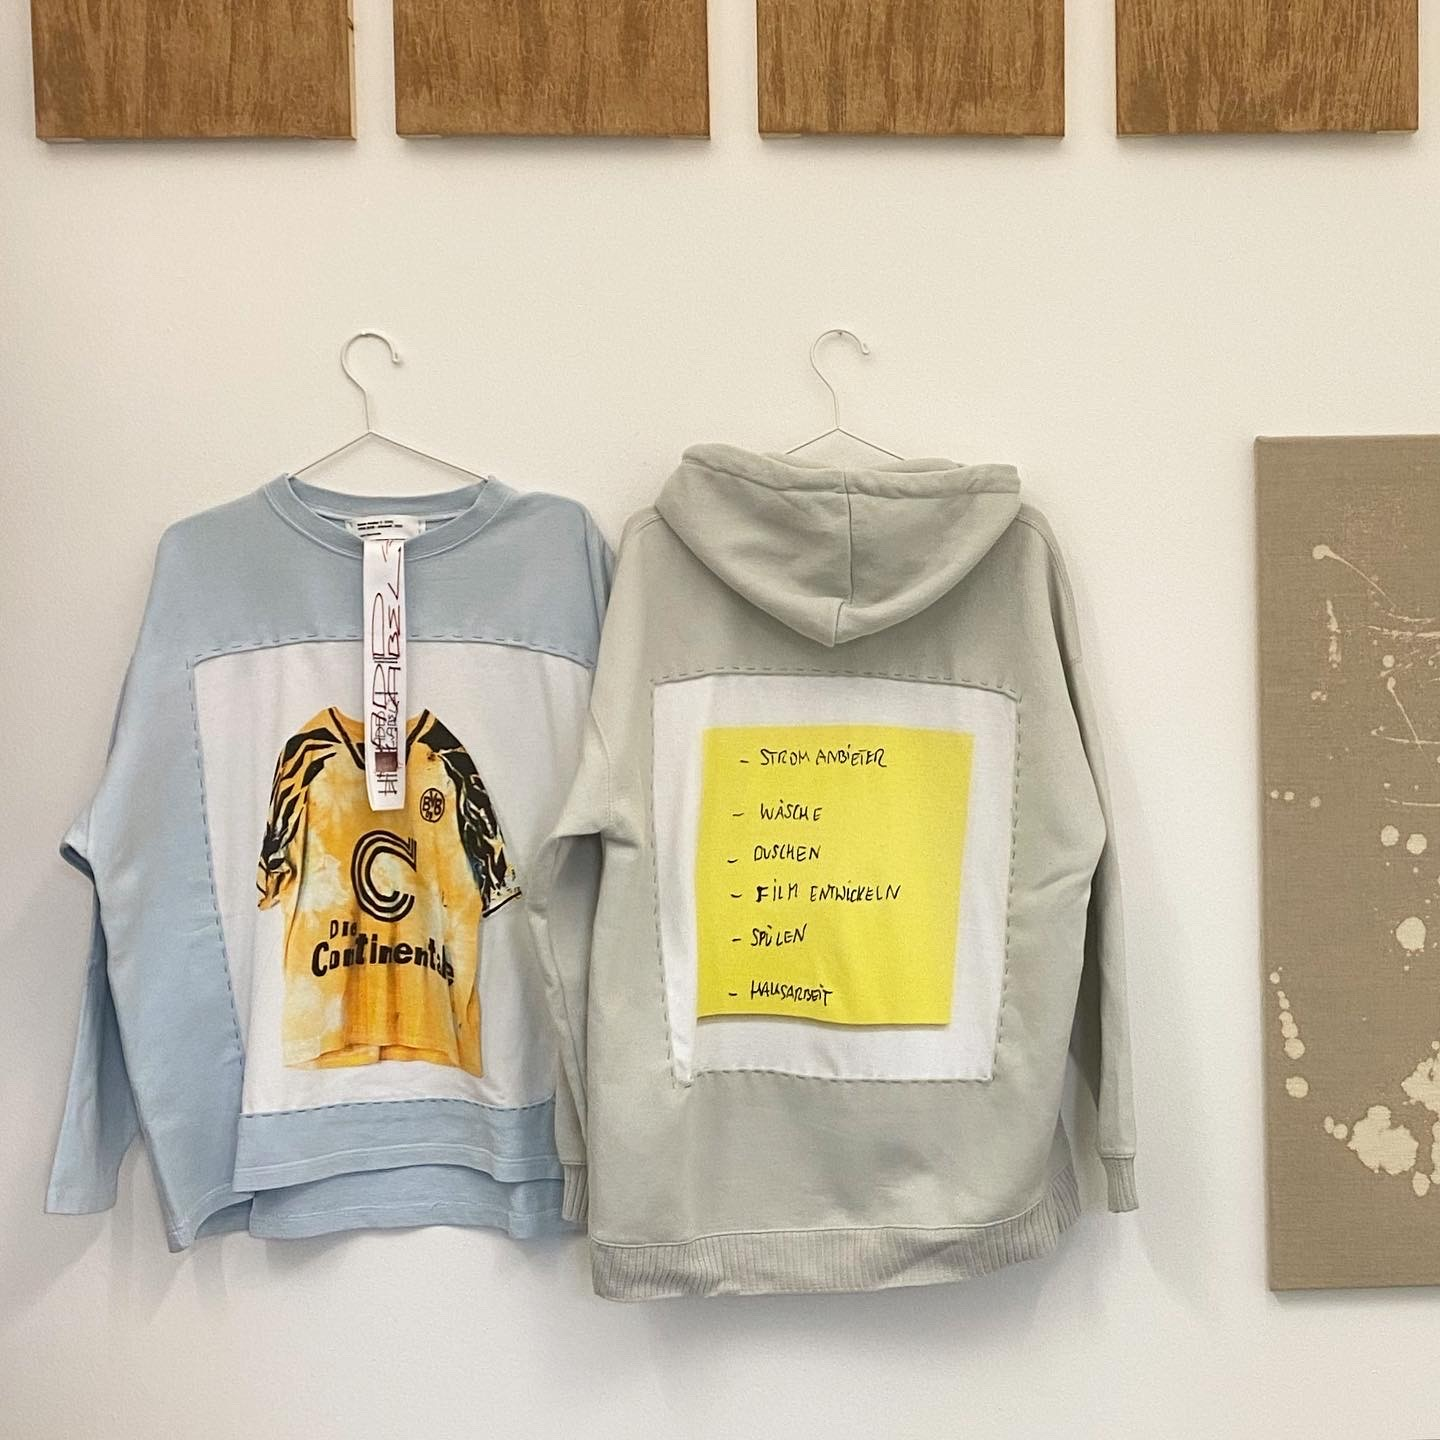 Twin Hoodies – Is D&G the same as Dolce & Gabbana? - ADDLABEL